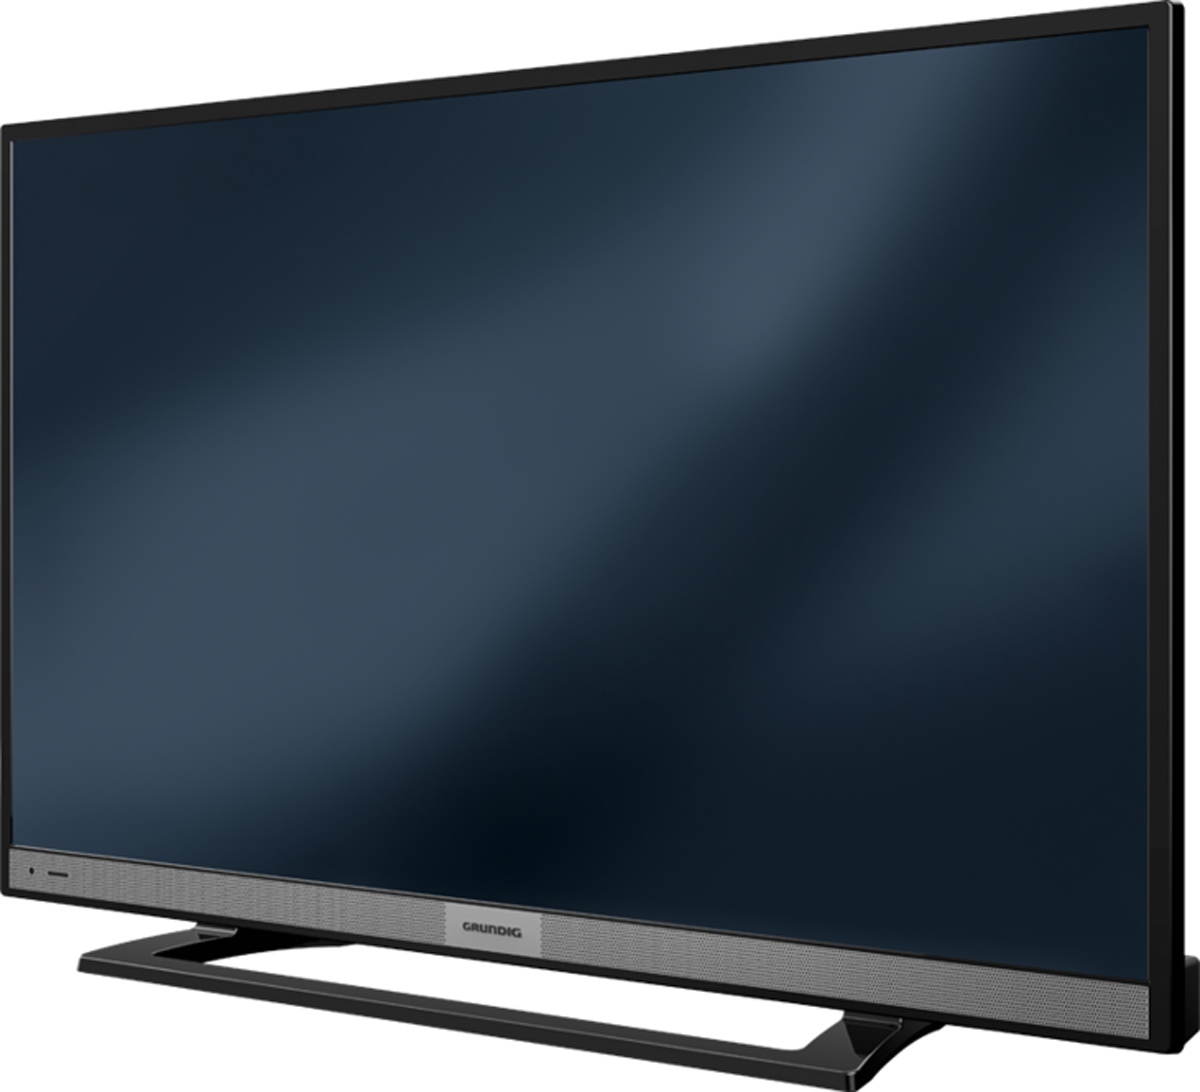 grundig led tv 22 gfb 5620 schwarz 22 zoll 55 cm. Black Bedroom Furniture Sets. Home Design Ideas